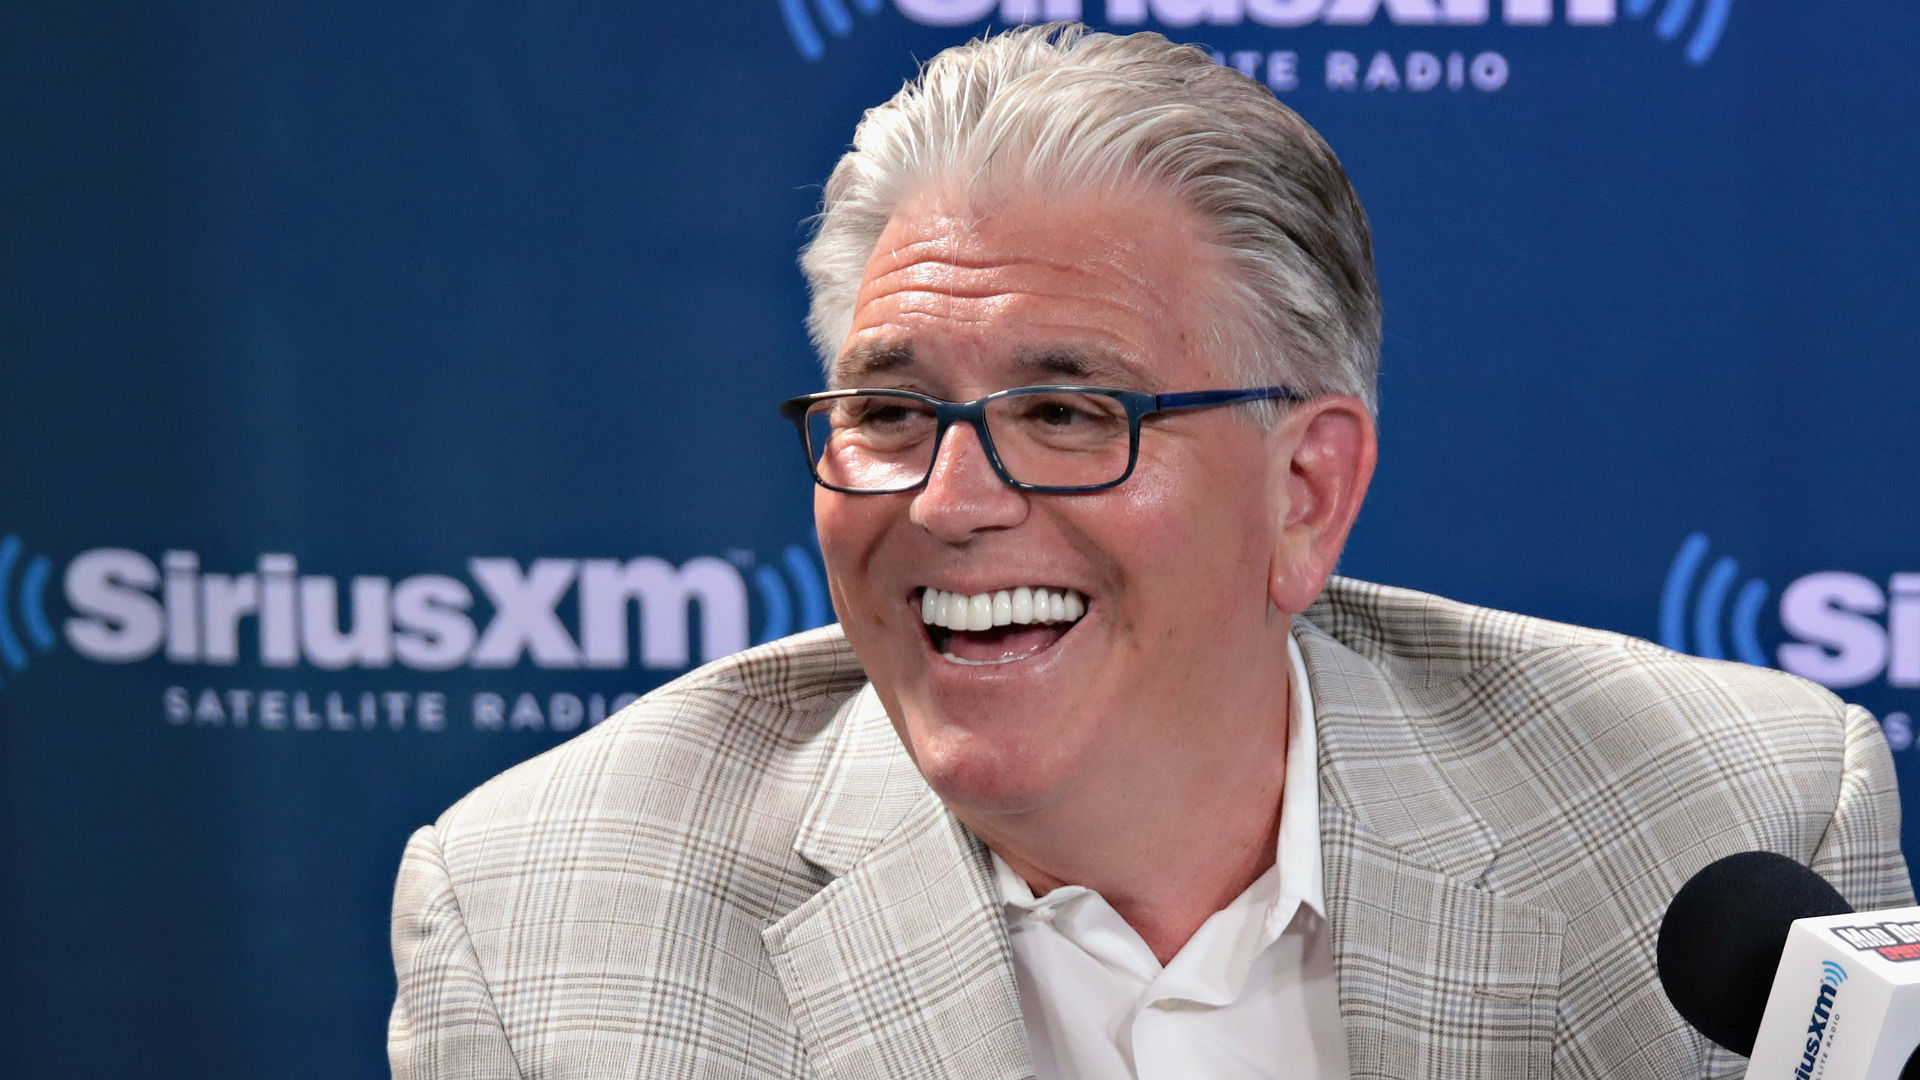 Francesa Vows Return To WFAN As Part Of New Project